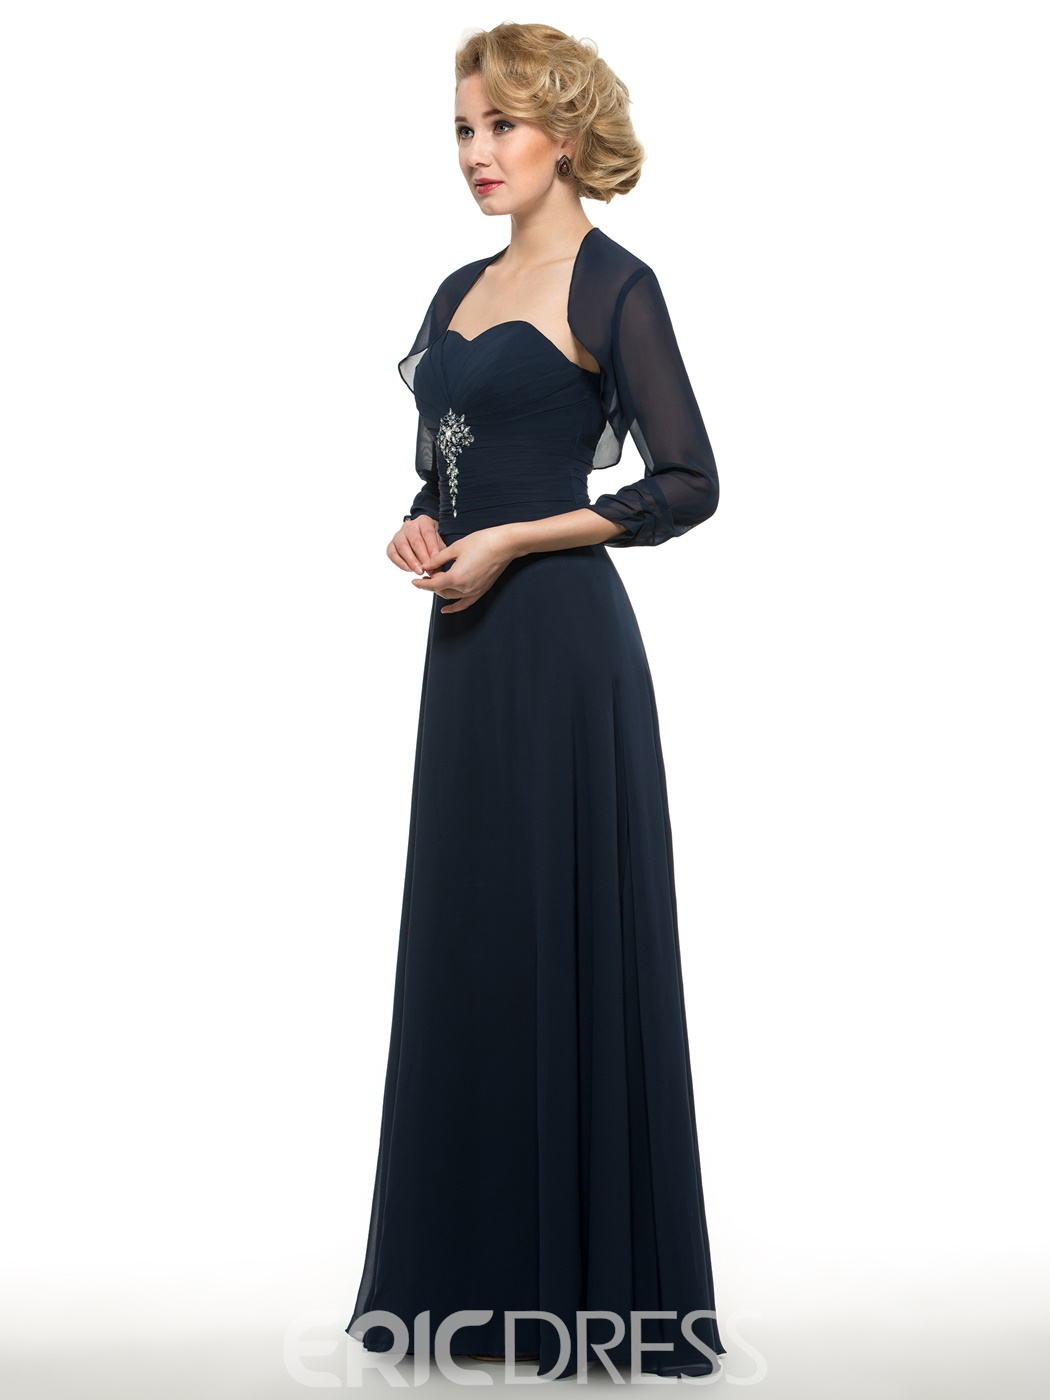 Ericdress Simple Sweetheart A Line Long Mother Of The Bride Dress With Jacket